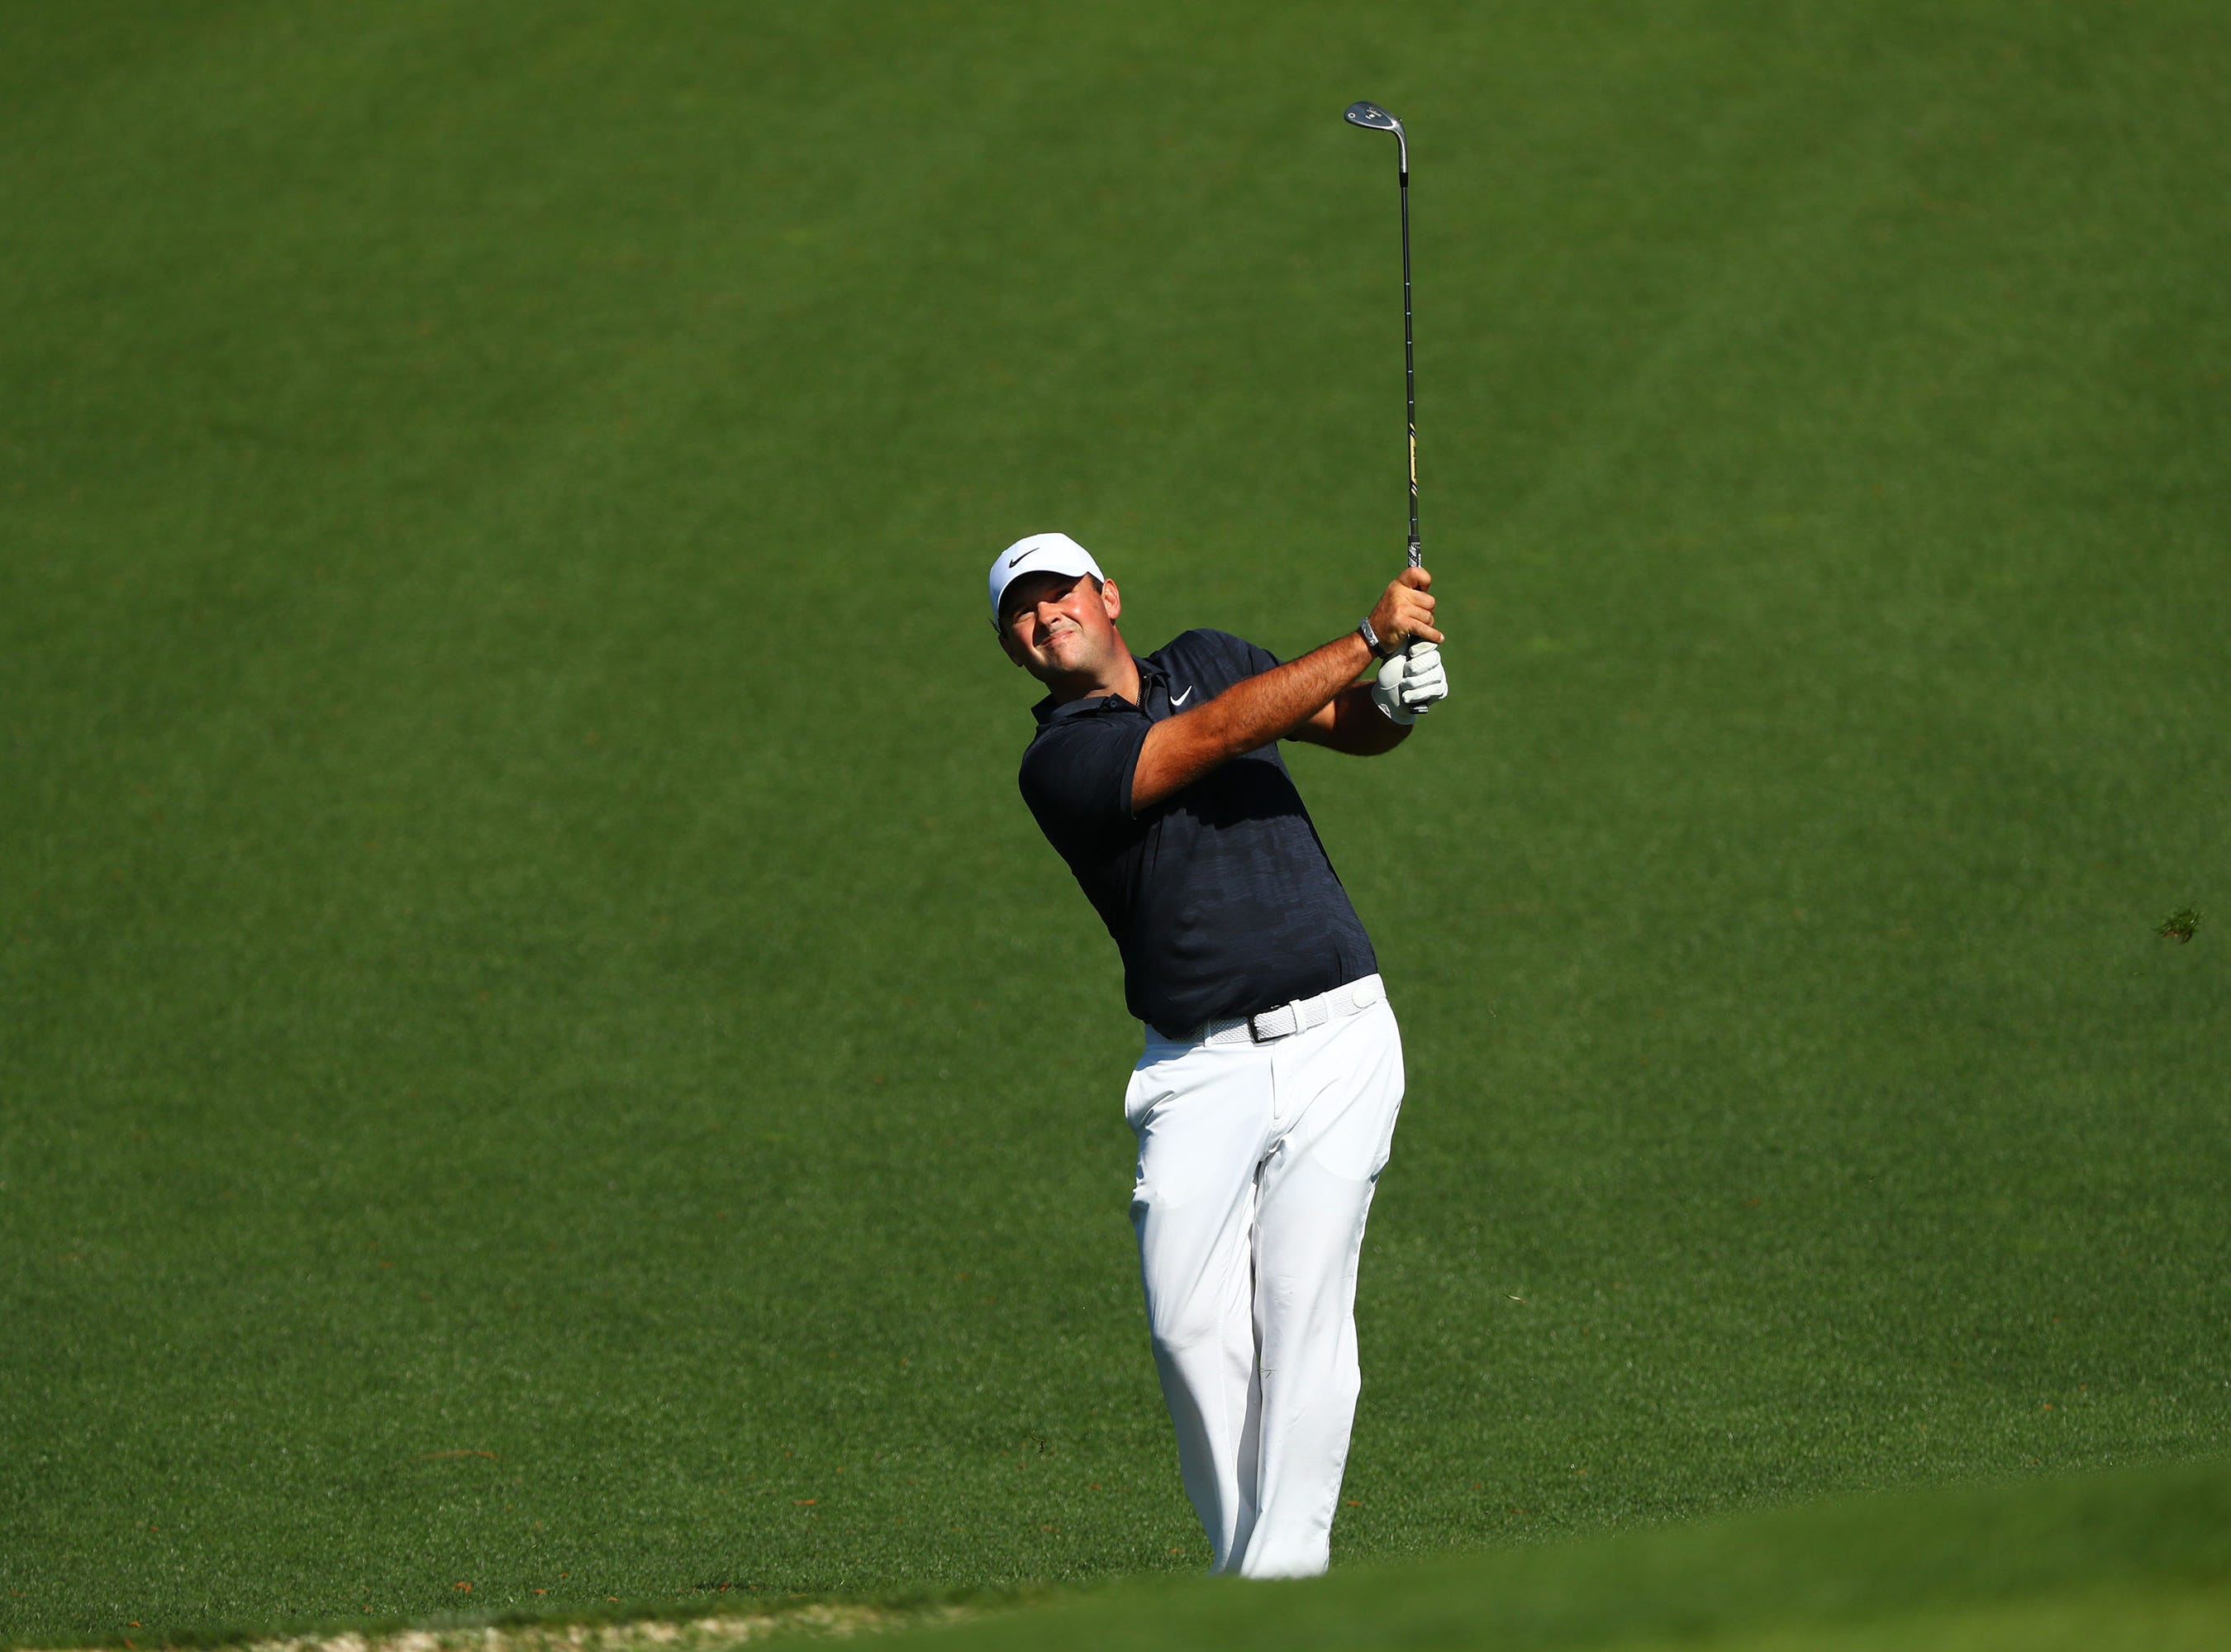 Apr 10, 2019; Augusta, GA, USA; Masters champion Patrick Reed plays a shot to the second green during a practice round for The Masters golf tournament at Augusta National Golf Club. Mandatory Credit: Rob Schumacher-USA TODAY Sports